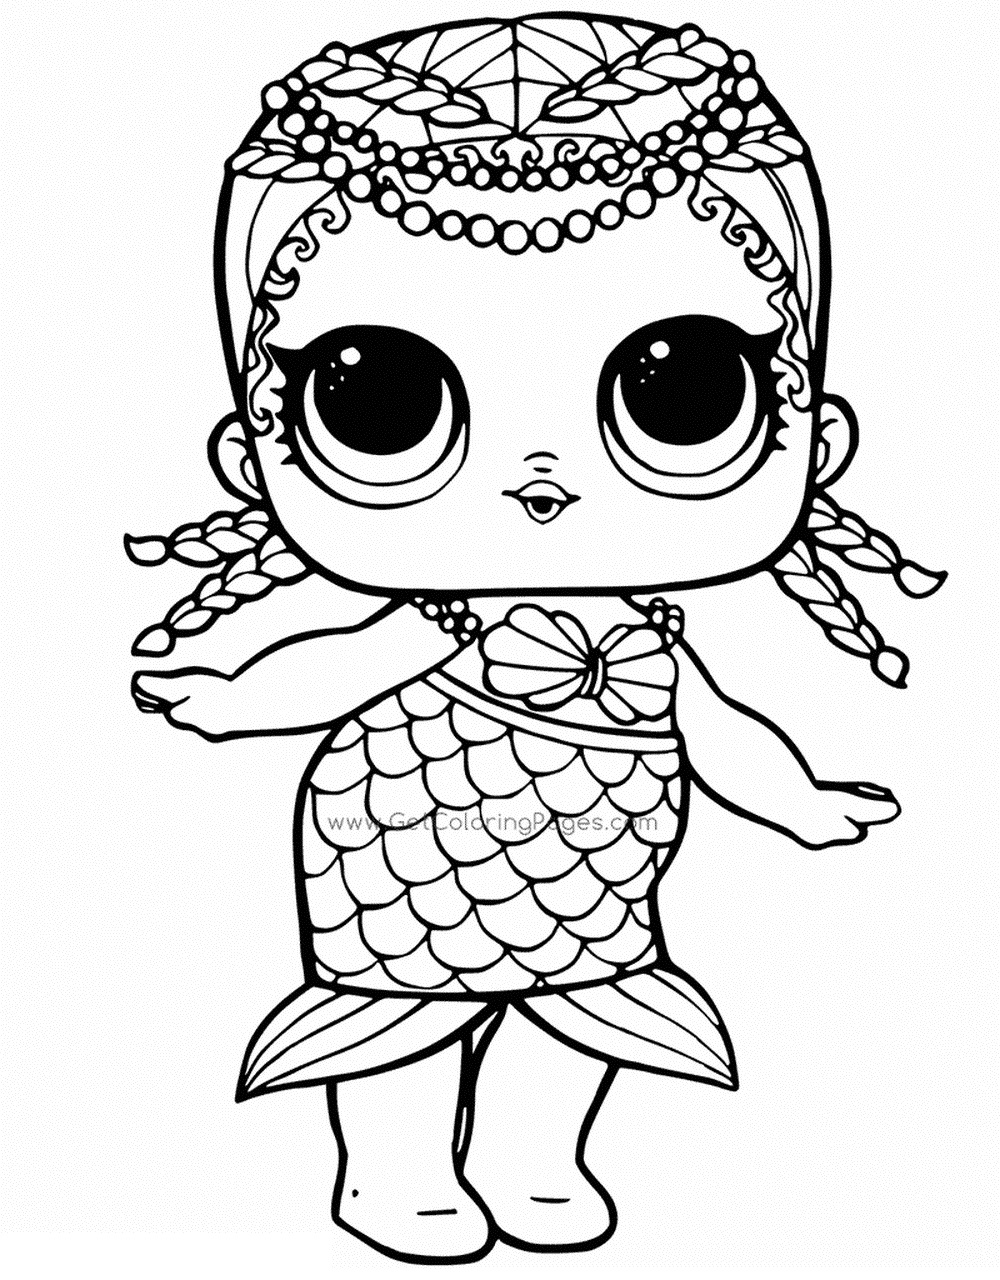 free printable lol coloring pages lol surprise coloring pages coloring pages for kids pages lol printable coloring free